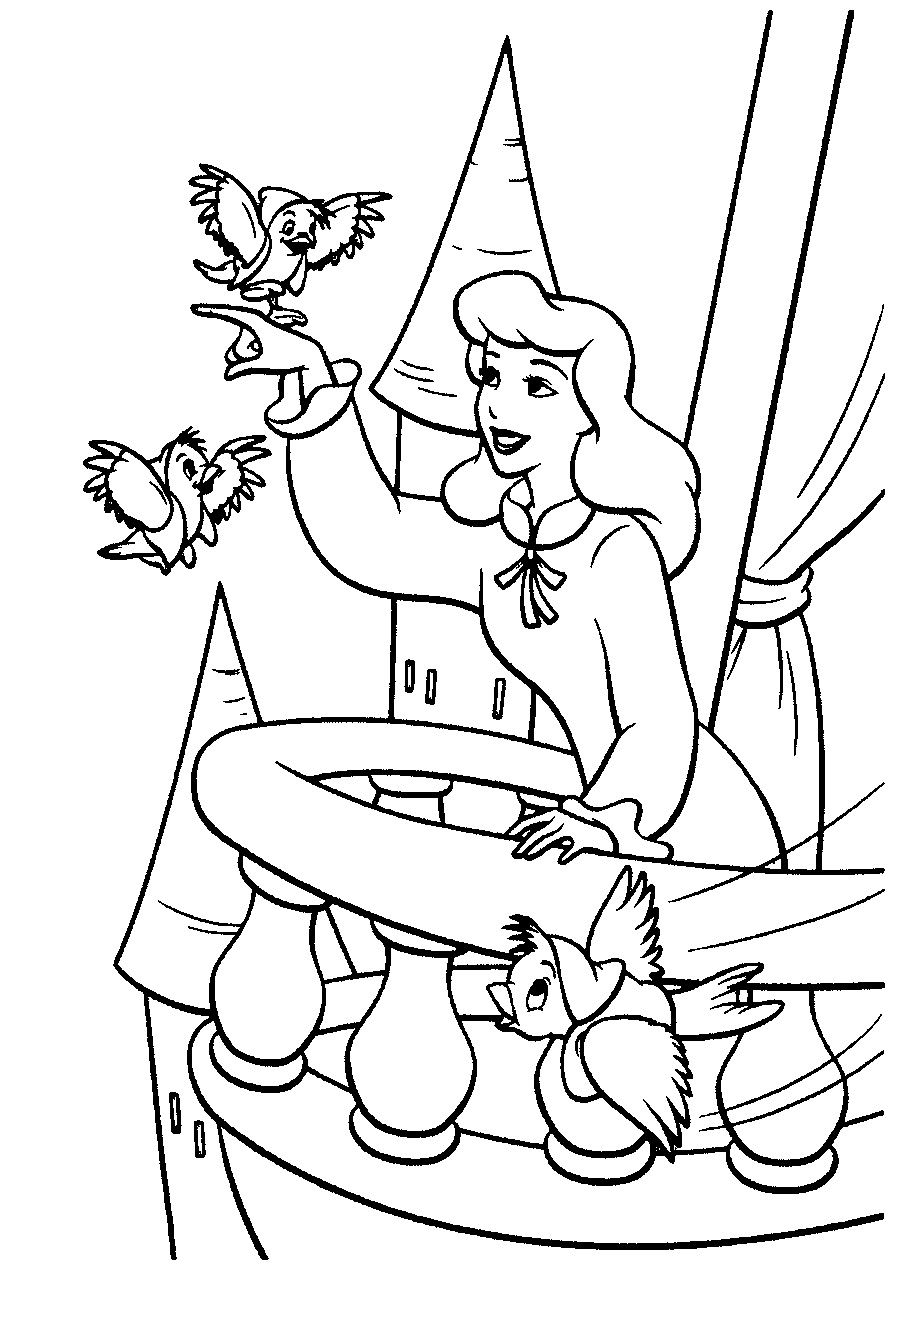 Coloring pages for cinderella - Cinderella Coloring Pages To Print Http Procoloring Com Cinderella Coloring